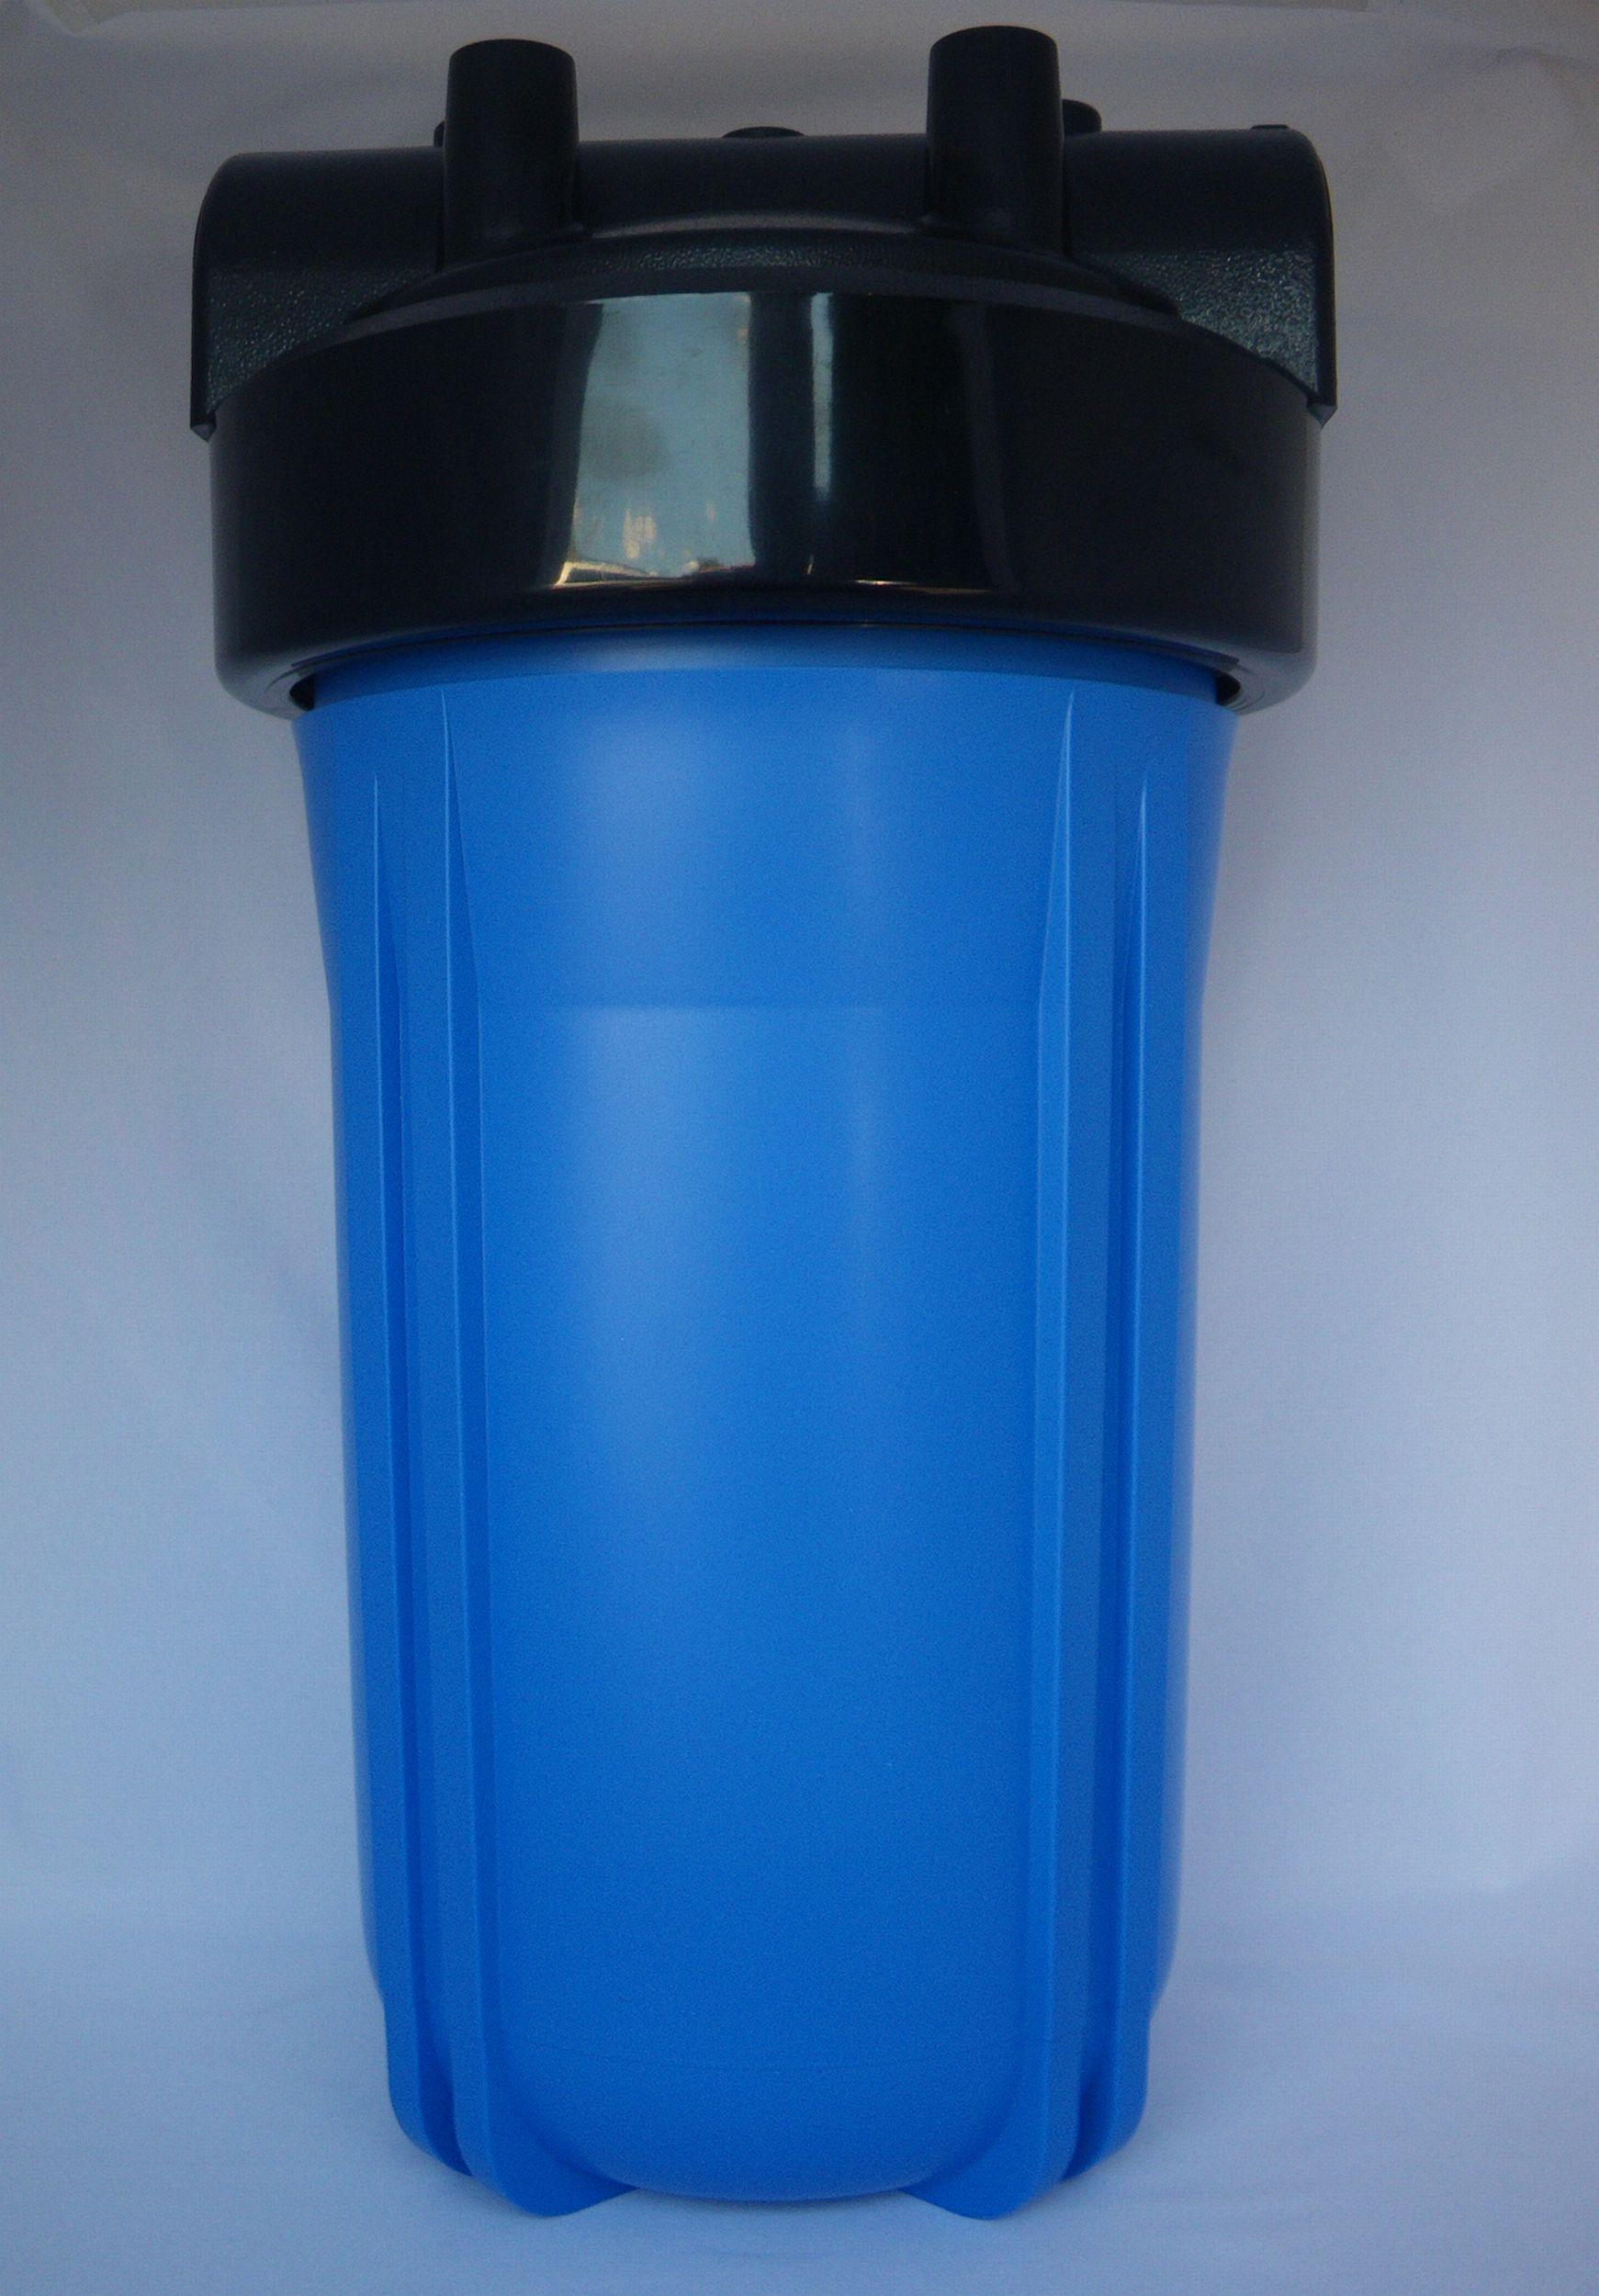 Big Blue Filter Housing For 10 Quot X 4 5 Quot Filter Filter